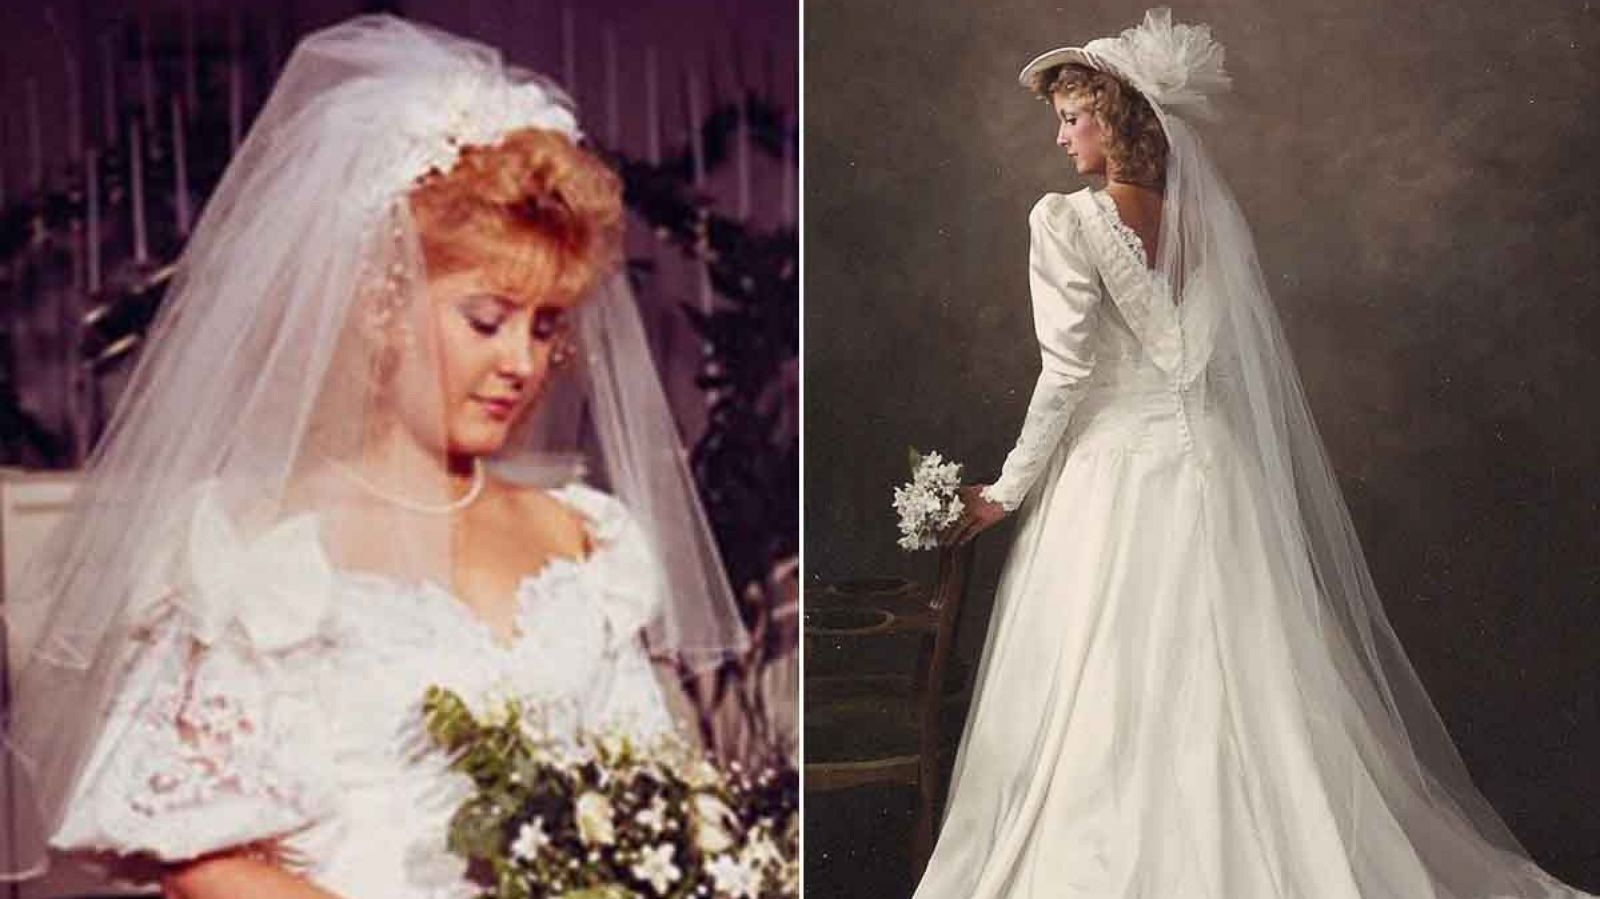 2 Strangers to Swap Wedding Dresses 30 Years After Mix-Up - ABC News